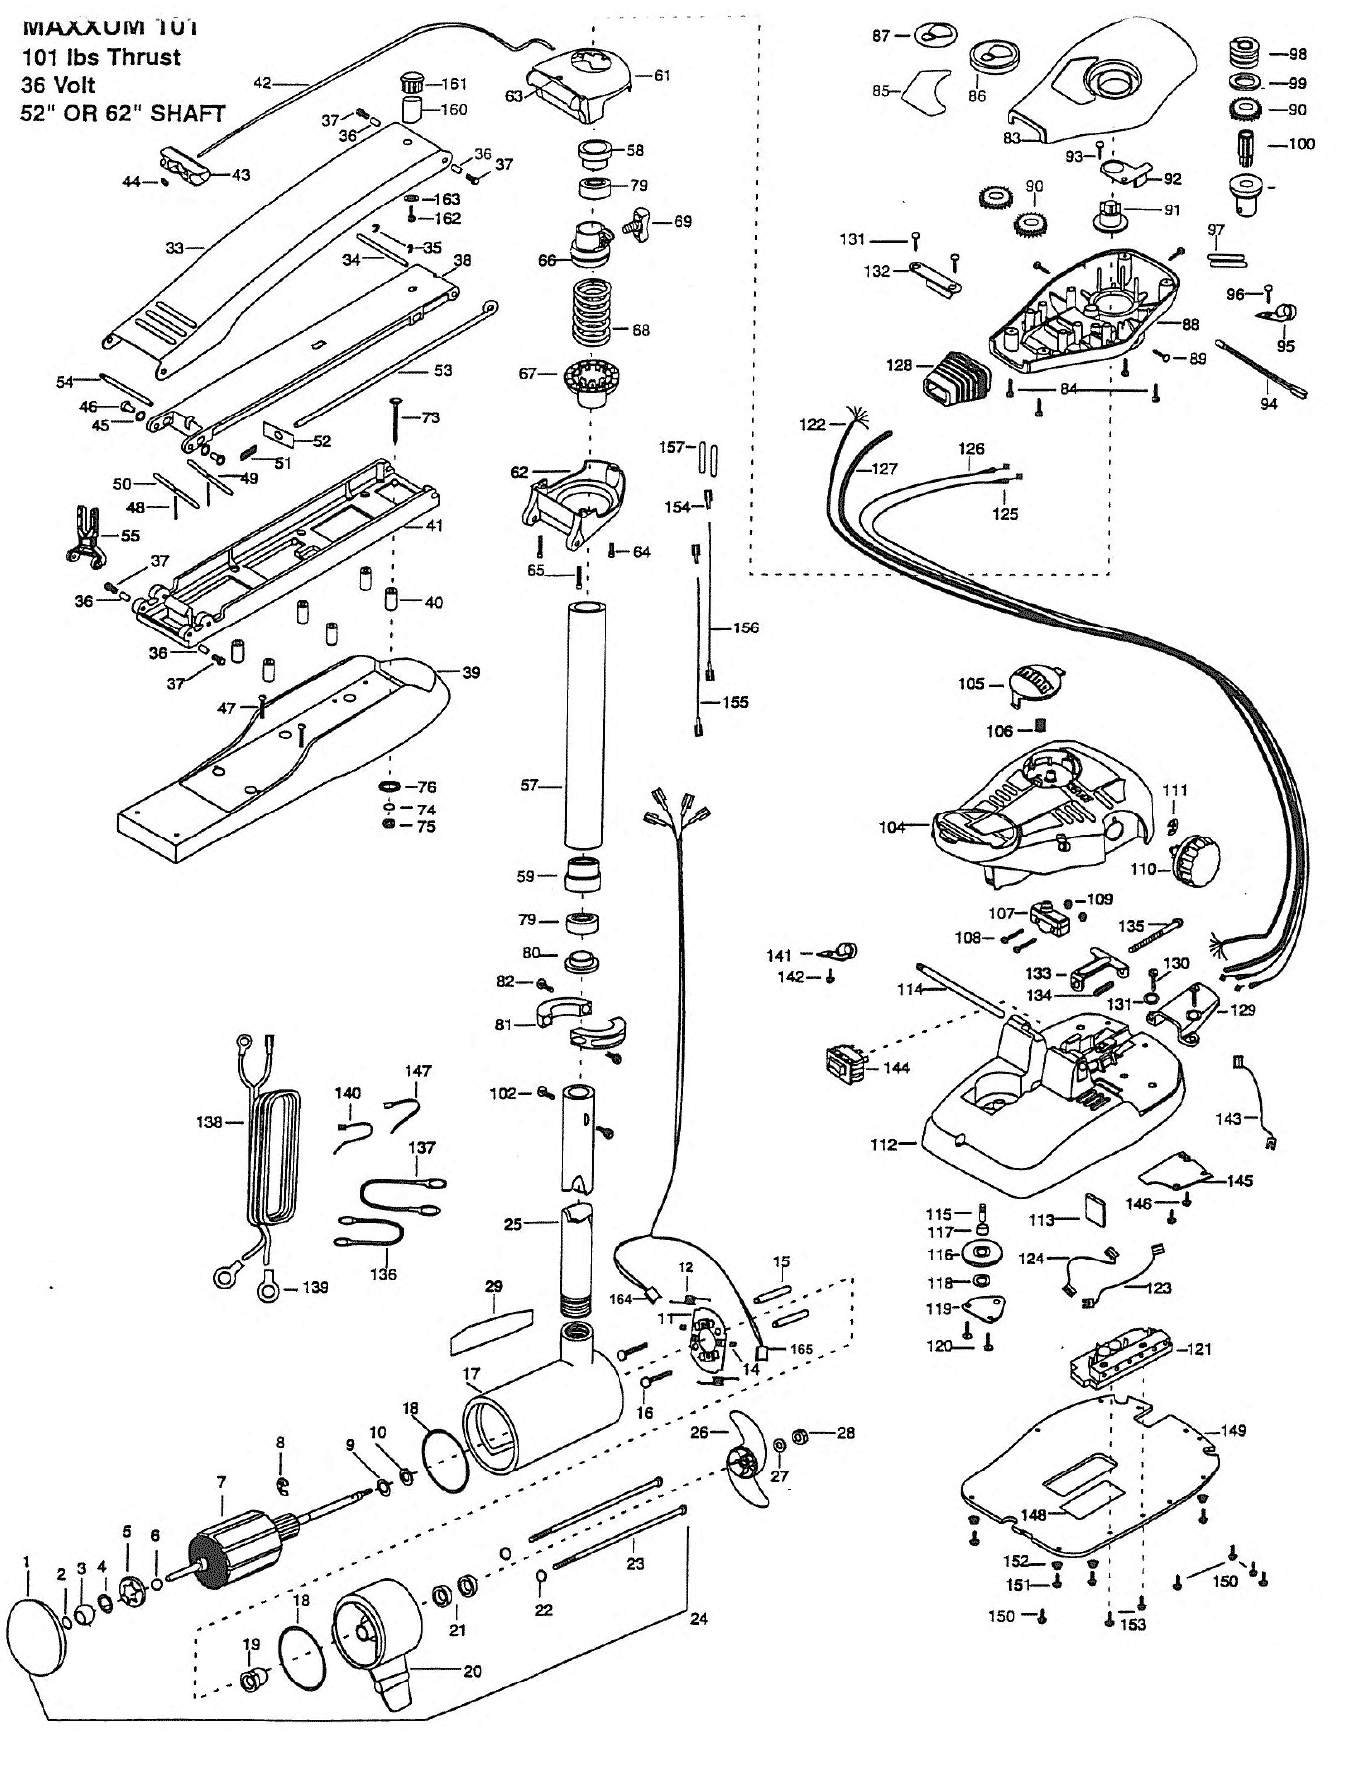 7623 truck wont run with 24v Thermostat Wiring Diagram on Mini Security Cam Wiring Diagram in addition 6 Way Trailer Connector Wiring Diagram Pdf further For John Deere Onan Engine Wiring Diagram Pdf moreover Wiring Diagram Of A Tube Light likewise Suzuki Dr 250 Wiring Diagram.